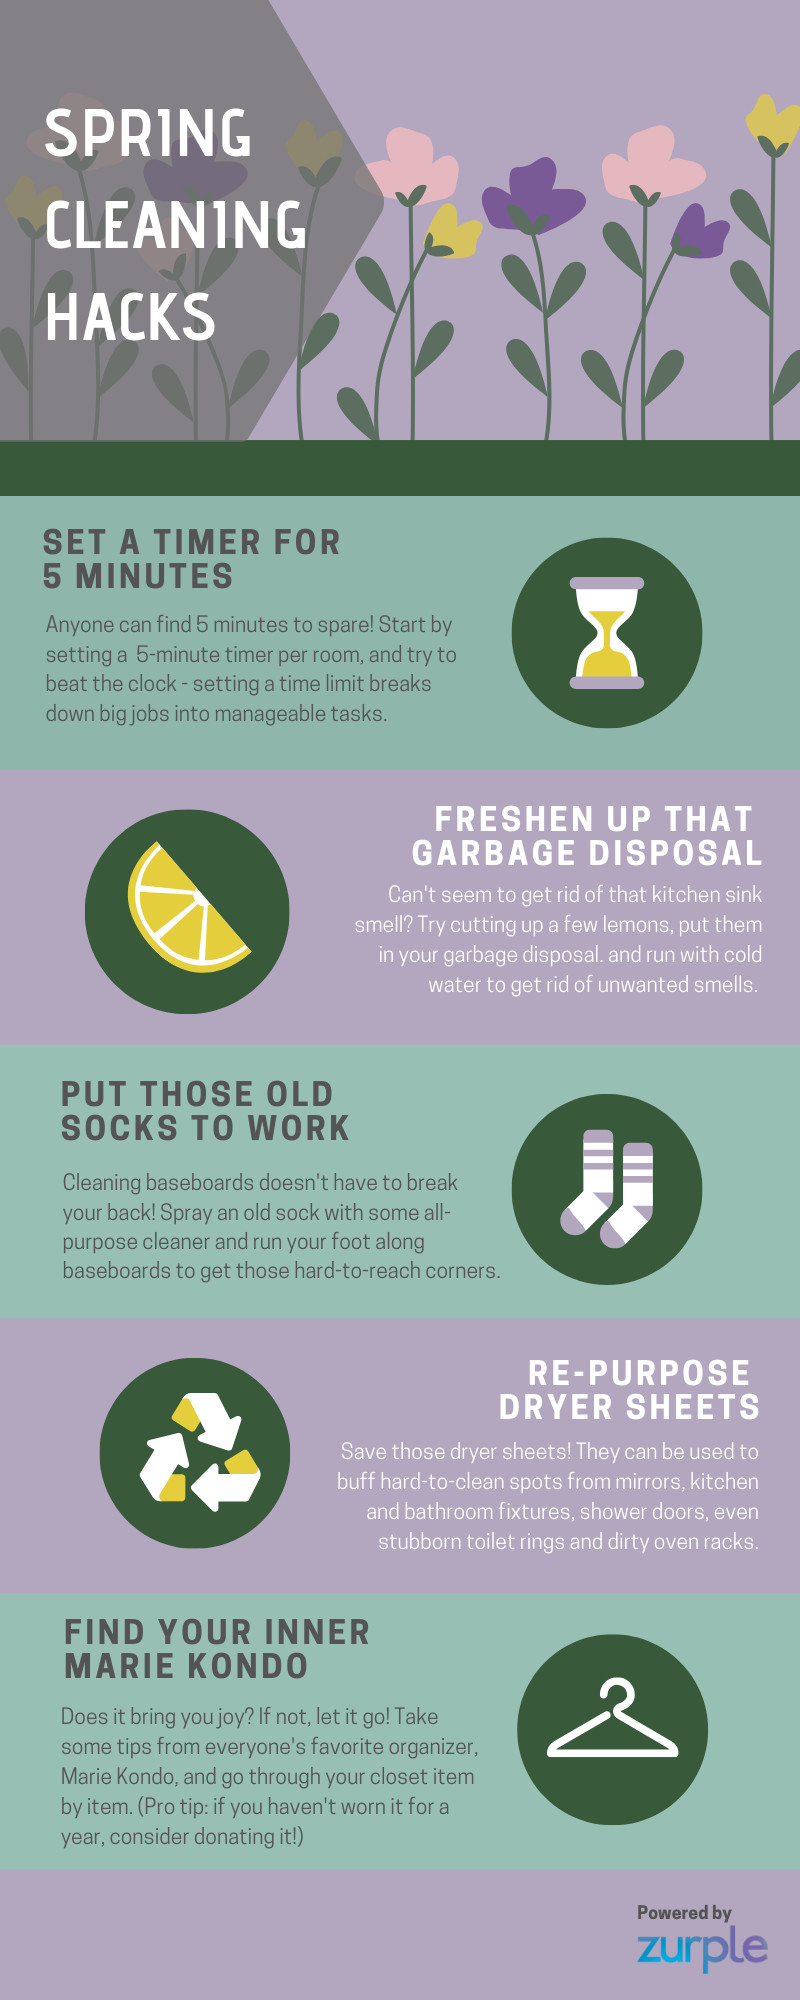 Get Ready To Sell Your Home With These Spring Cleaning Hacks